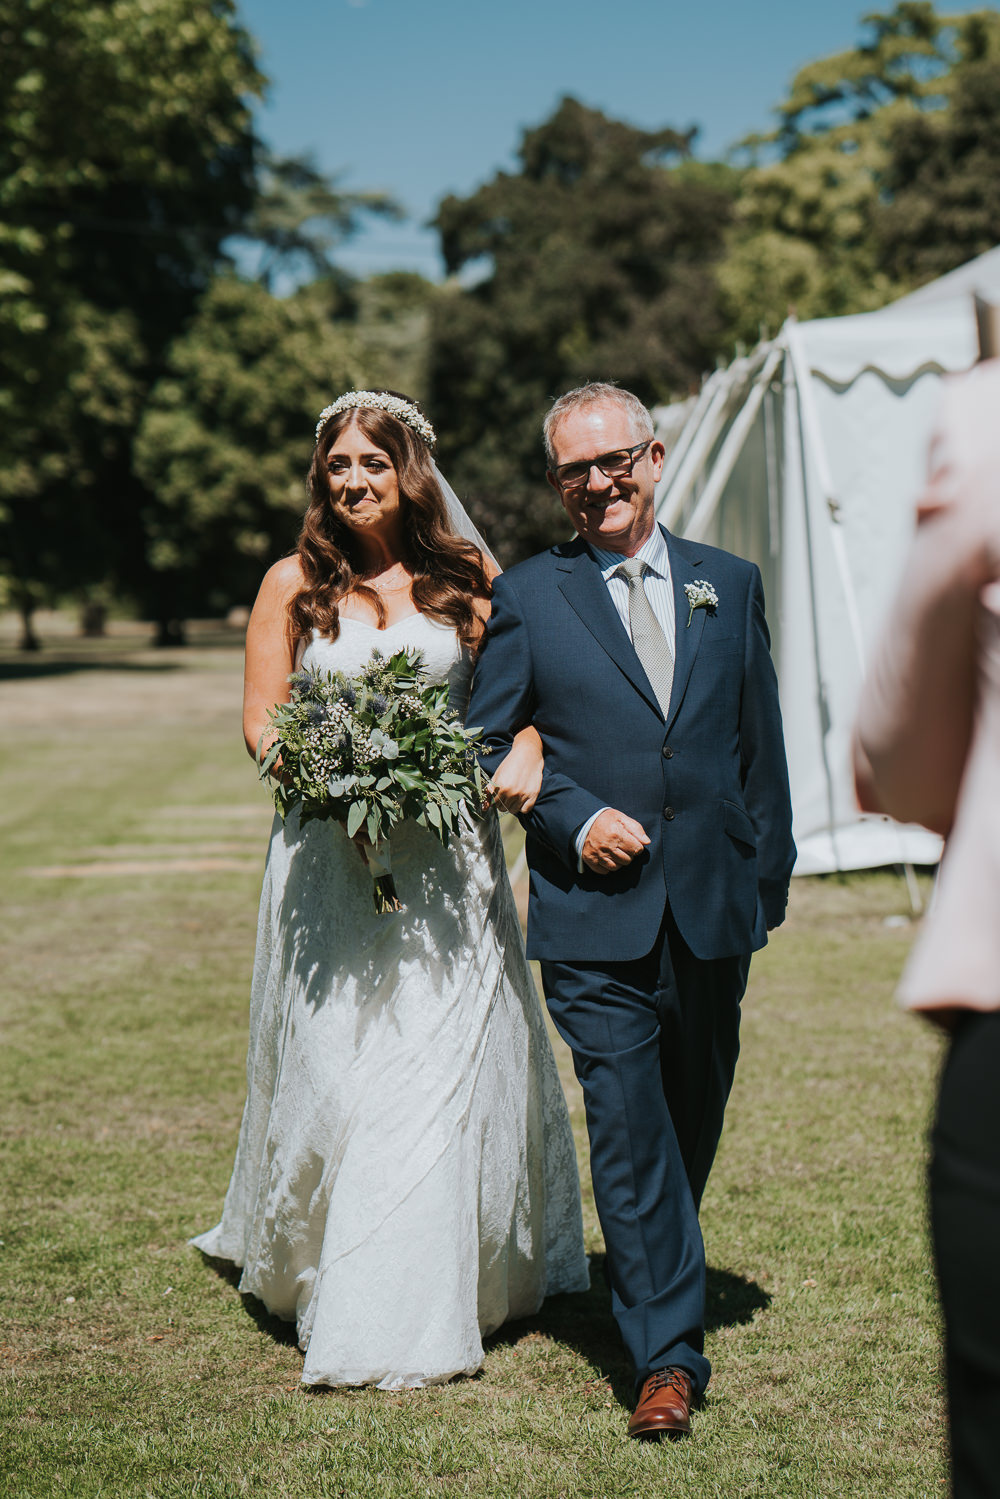 Intimate Outdoor Natural Relaxed Laid Back Summer Gazebo Ceremony Aisle Bride Father Foliage Greenery Bouquet | Prested Hall Wedding Grace Elizabeth Photography